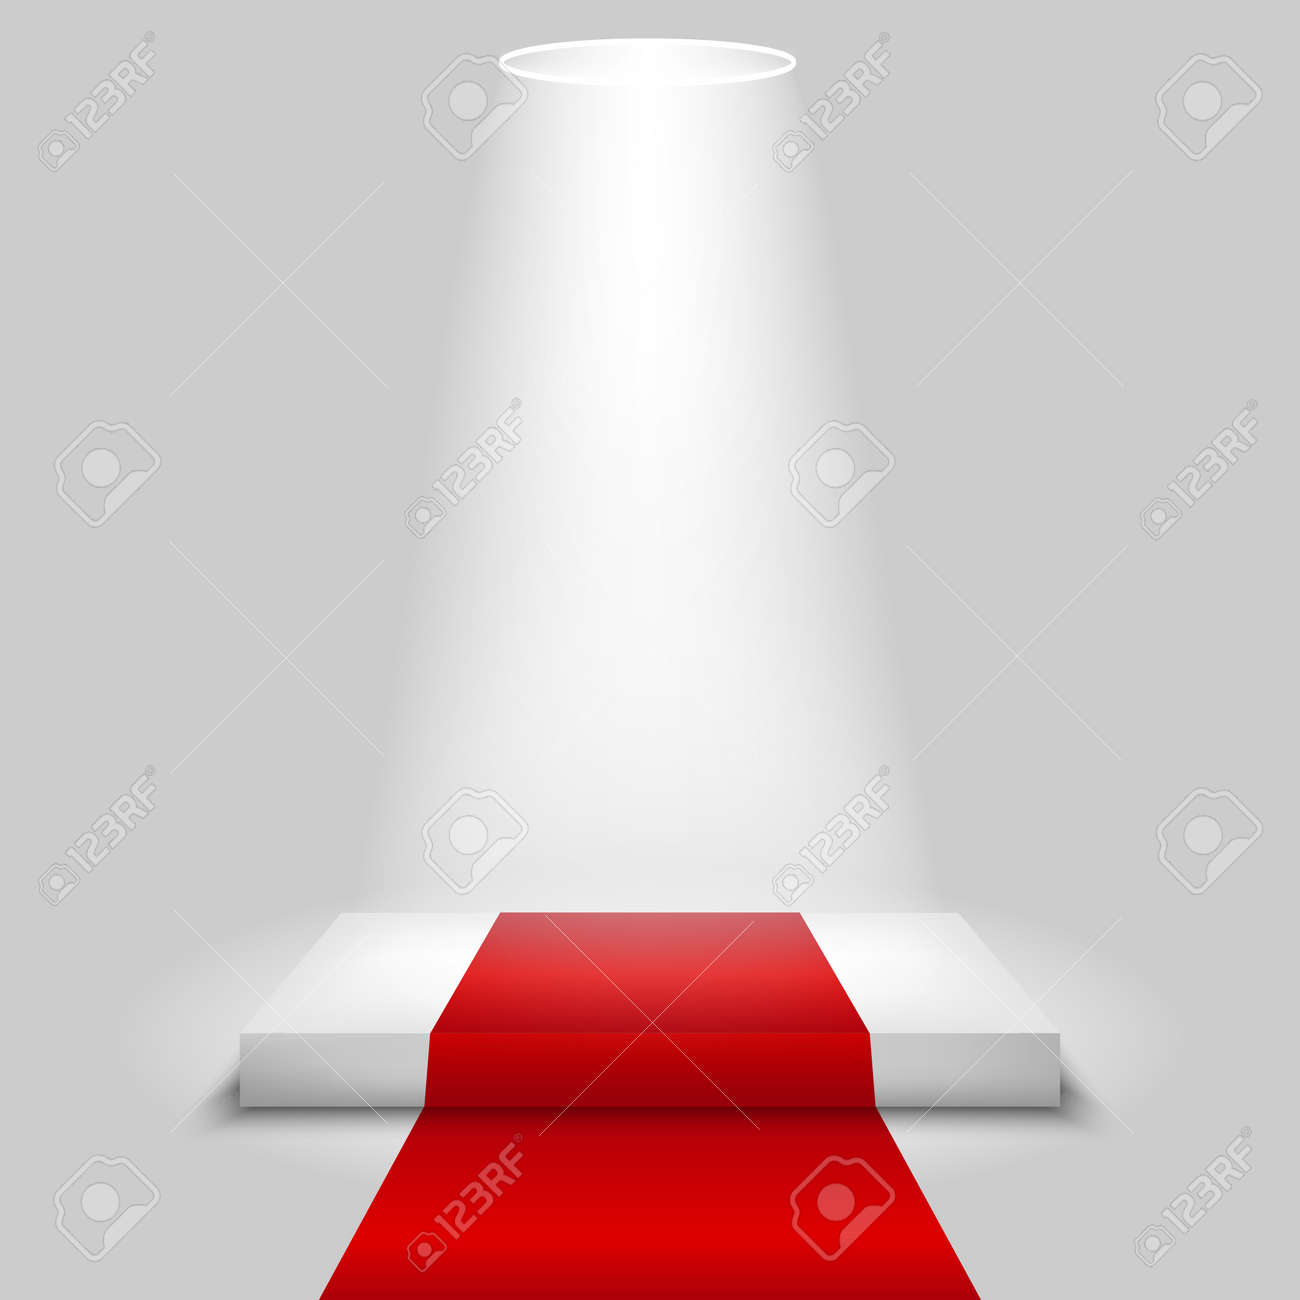 Realistic contest scene with the Red carpet and the spotlight, the Red carpet on empty white podium, place for product placement for presentation, winners podium or stage with the Red carpet, vector - 154820115